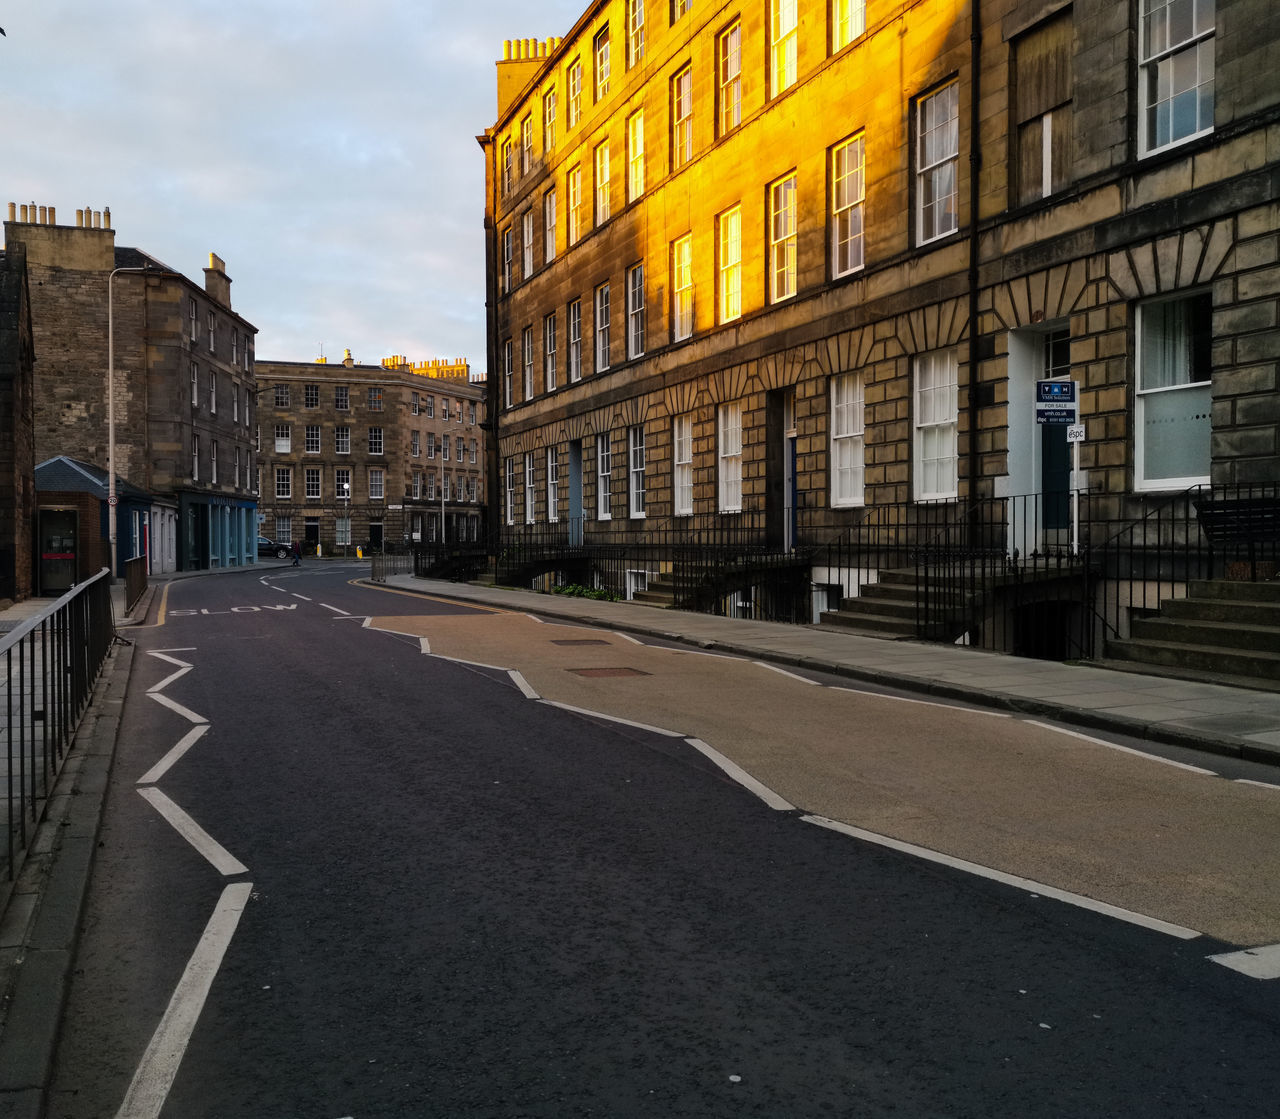 EMPTY ROAD BY BUILDINGS IN CITY